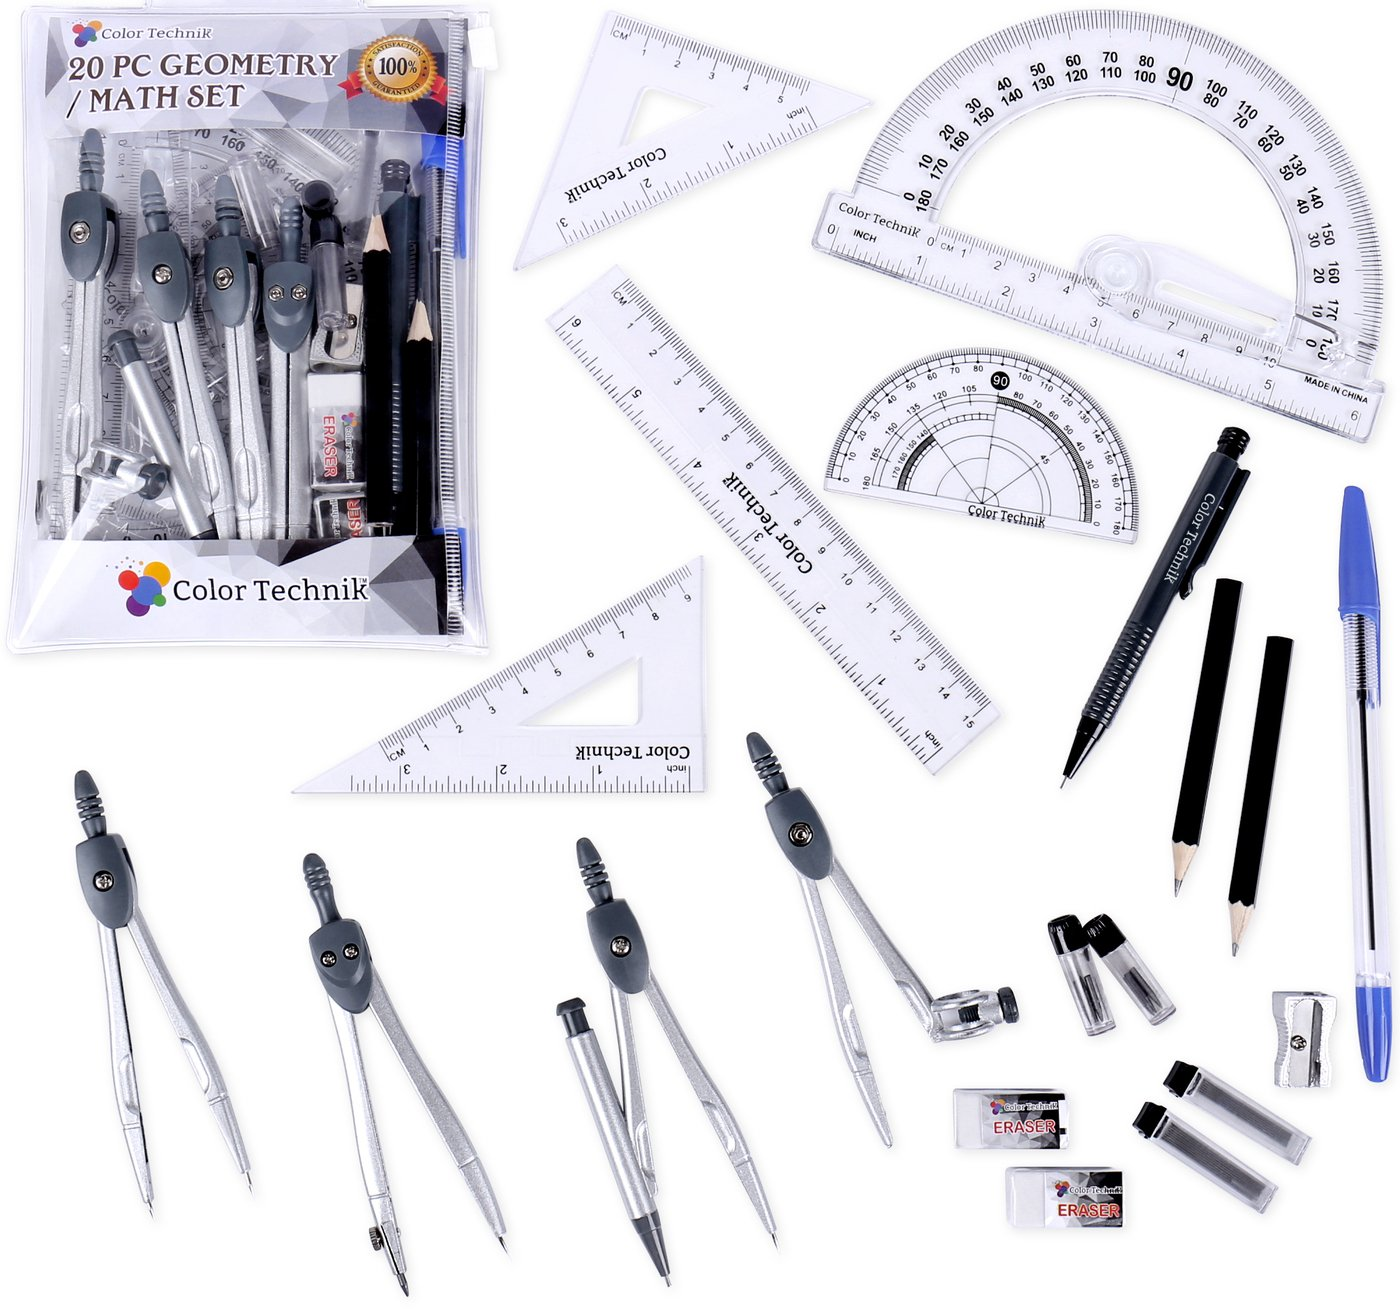 Color Technik- 20 Pc Compass/Math Set with Swing Arm Protractor (6''), Geometry Set for Students, Divider, Set Squares, Ruler, Protractor etc. Perfect Gift